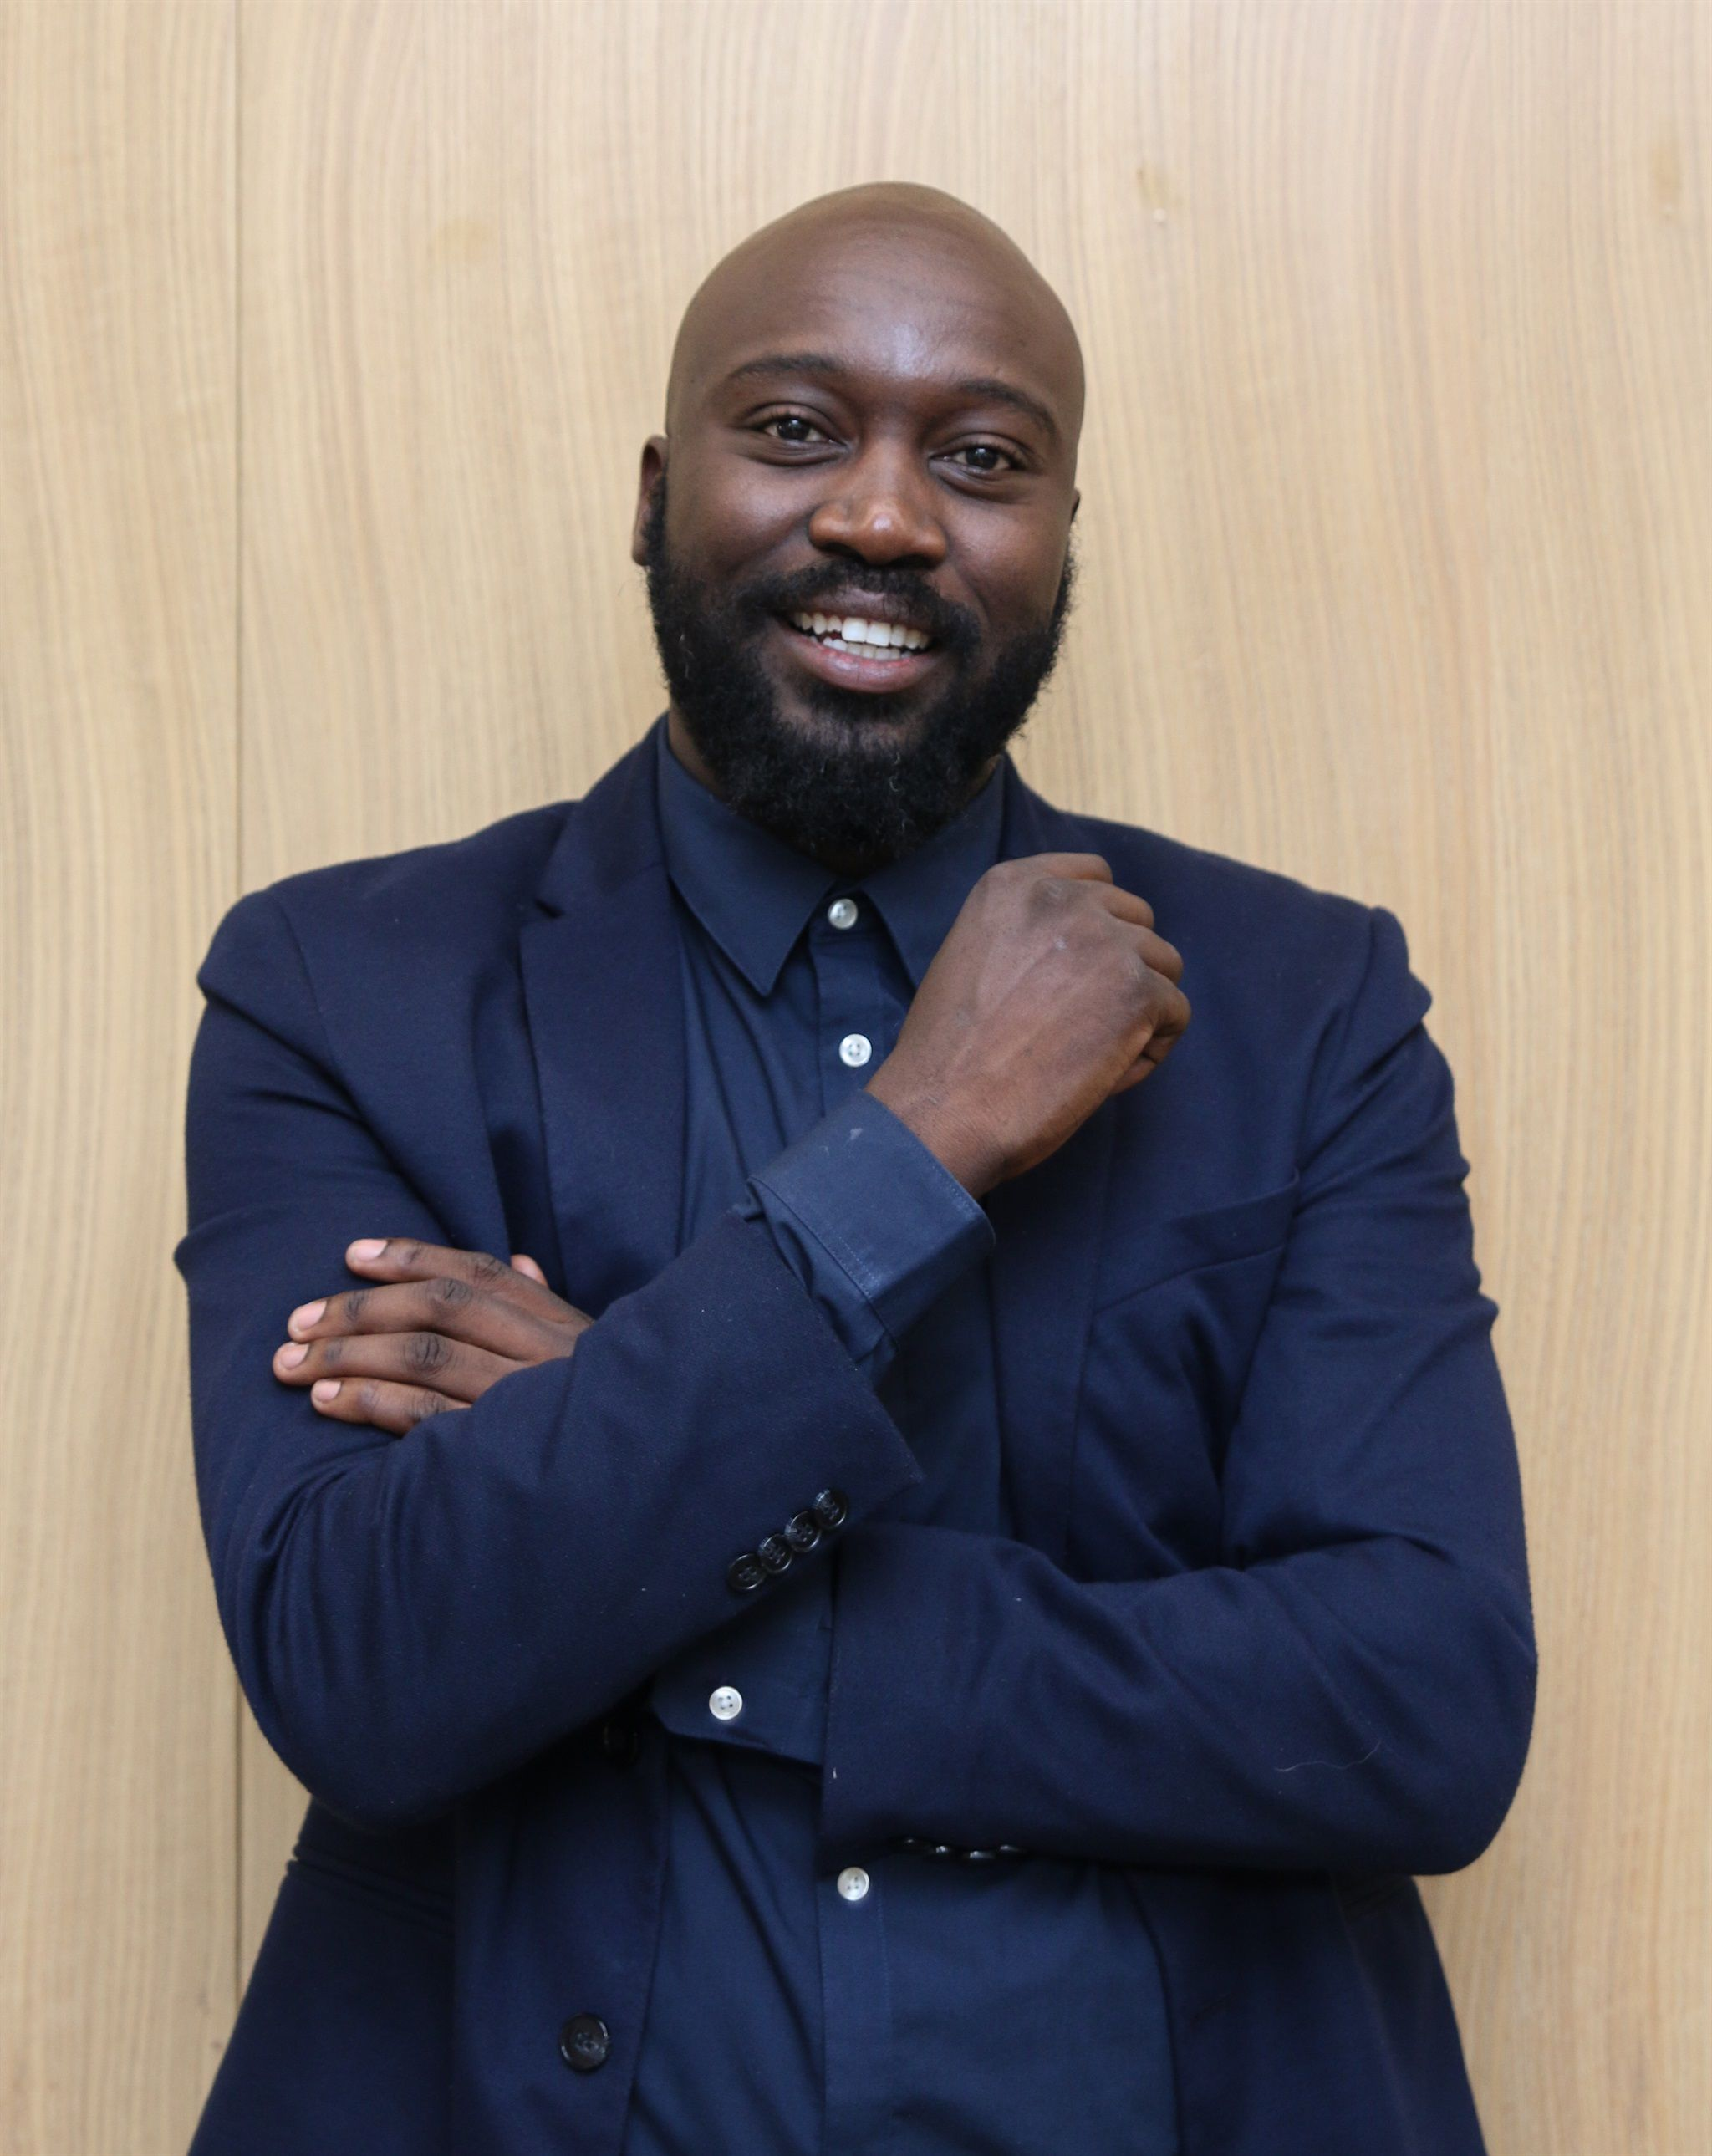 Avatar Appoints Grant Sithole As New Chief Creative Officer photo